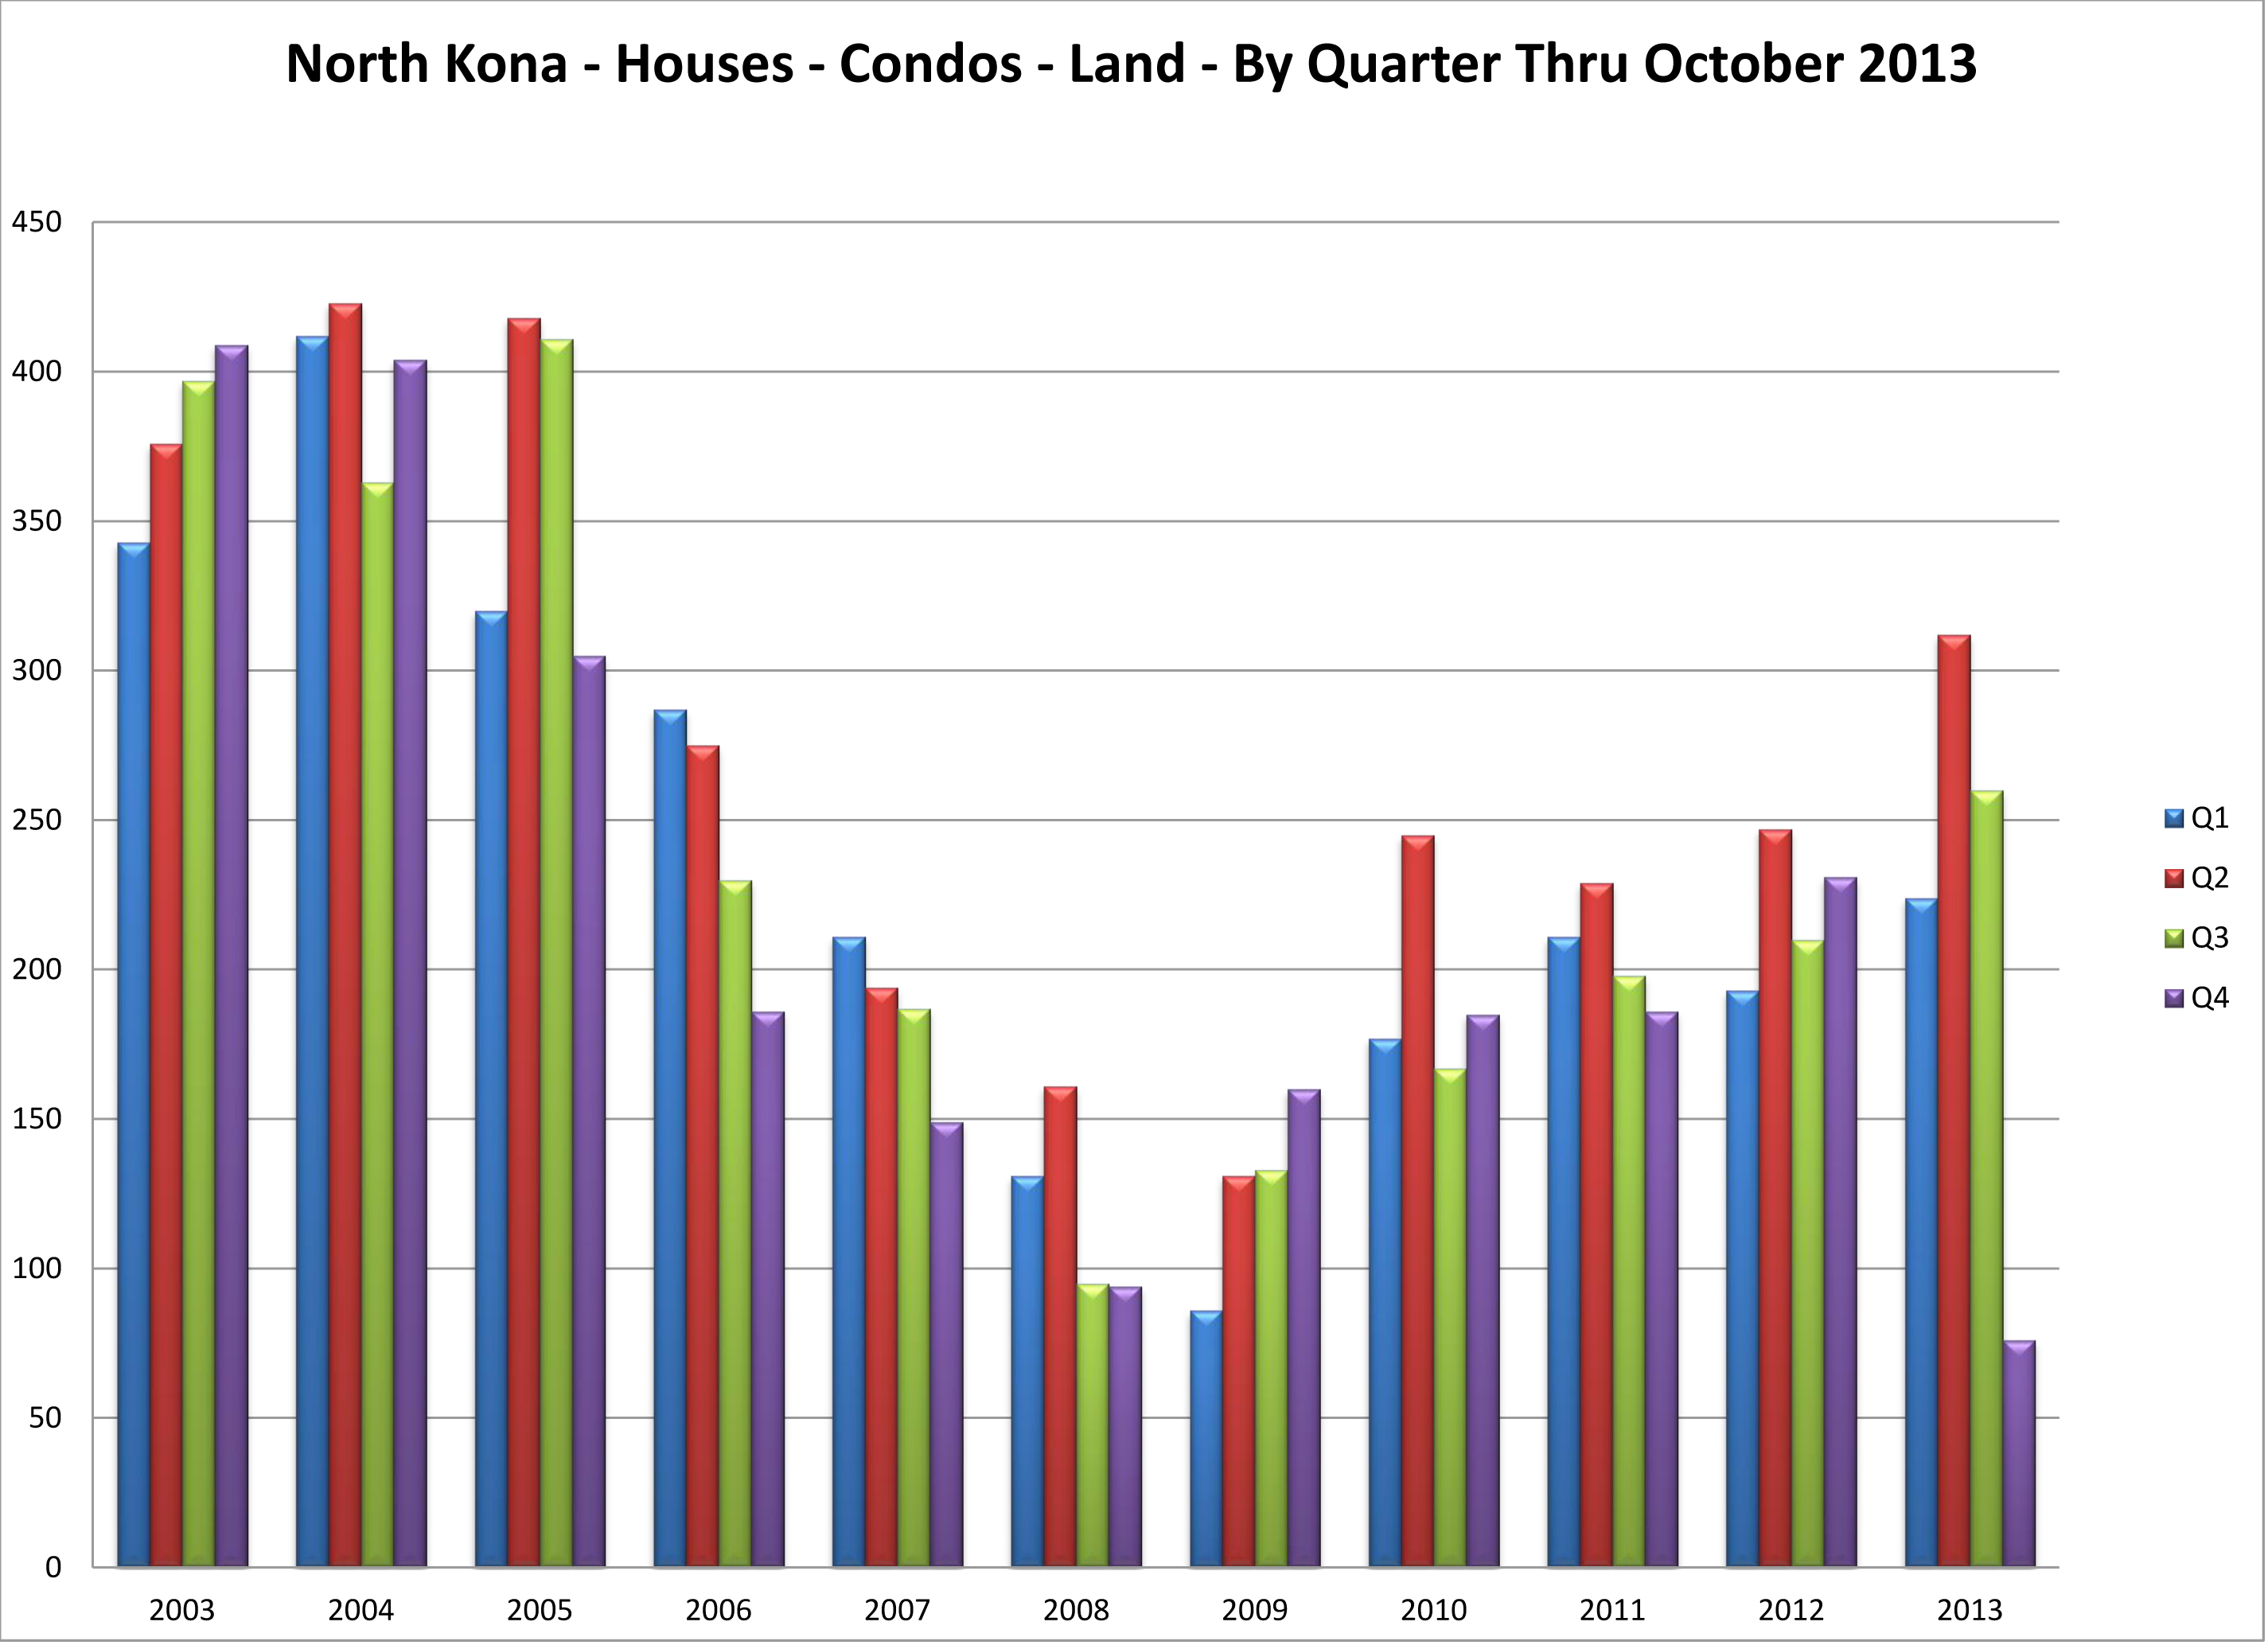 NK 03 to 13 by quarter Nov 2013